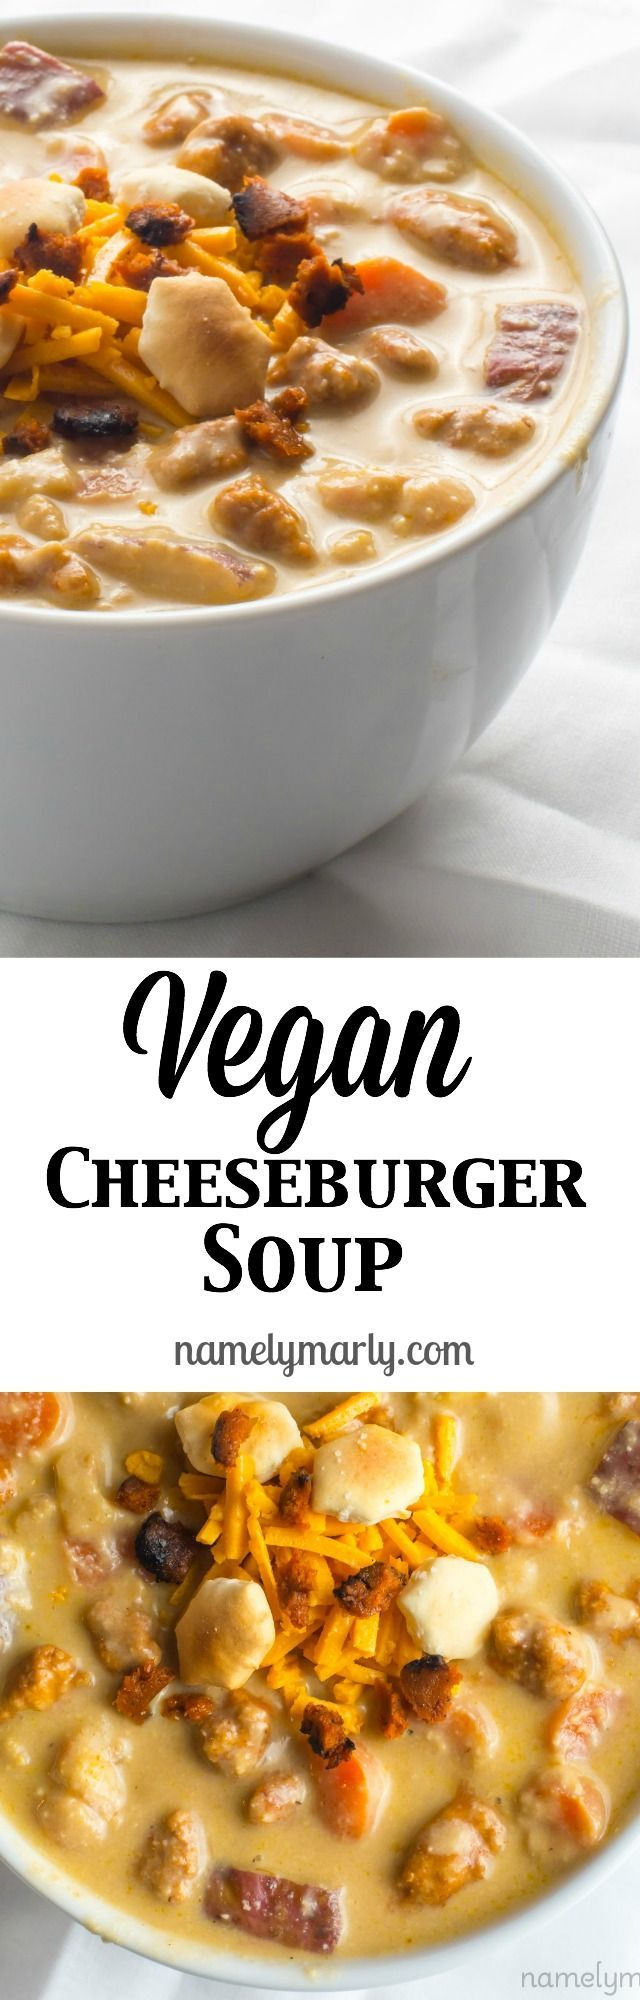 Take a bite out of this delicious Vegan Cheeseburger Soup recipe and come back for more. It's a creamy soup made with cashews, potatoes, carrots, and cheese. A perfect weeknight meal.